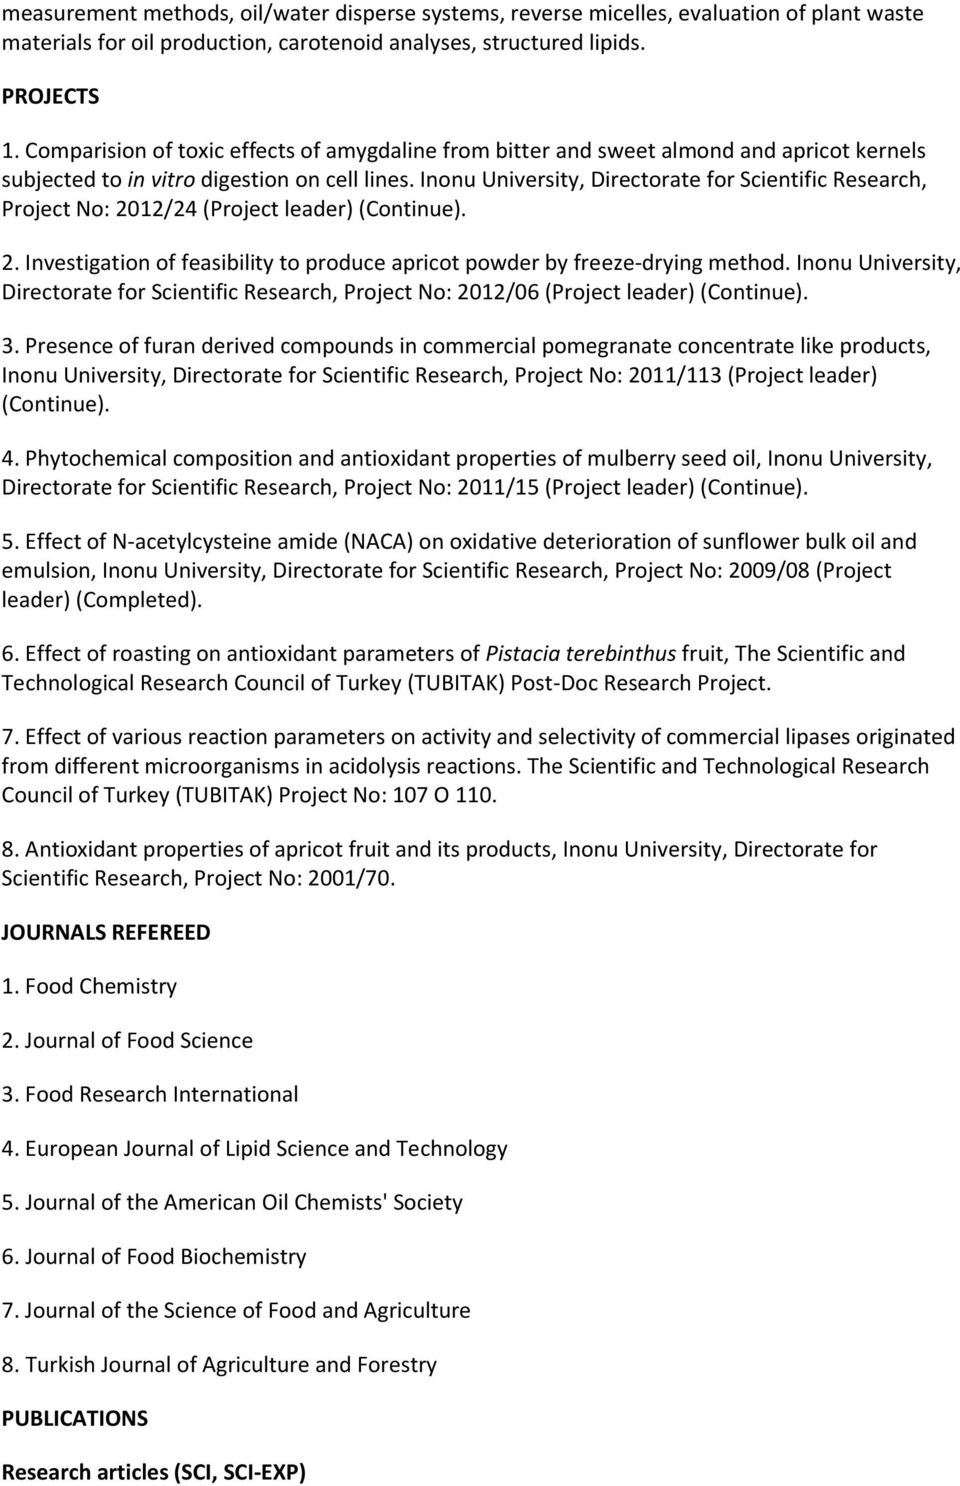 Inonu University, Directorate for Scientific Research, Project No: 2012/24 (Project leader) (Continue). 2. Investigation of feasibility to produce apricot powder by freeze-drying method.